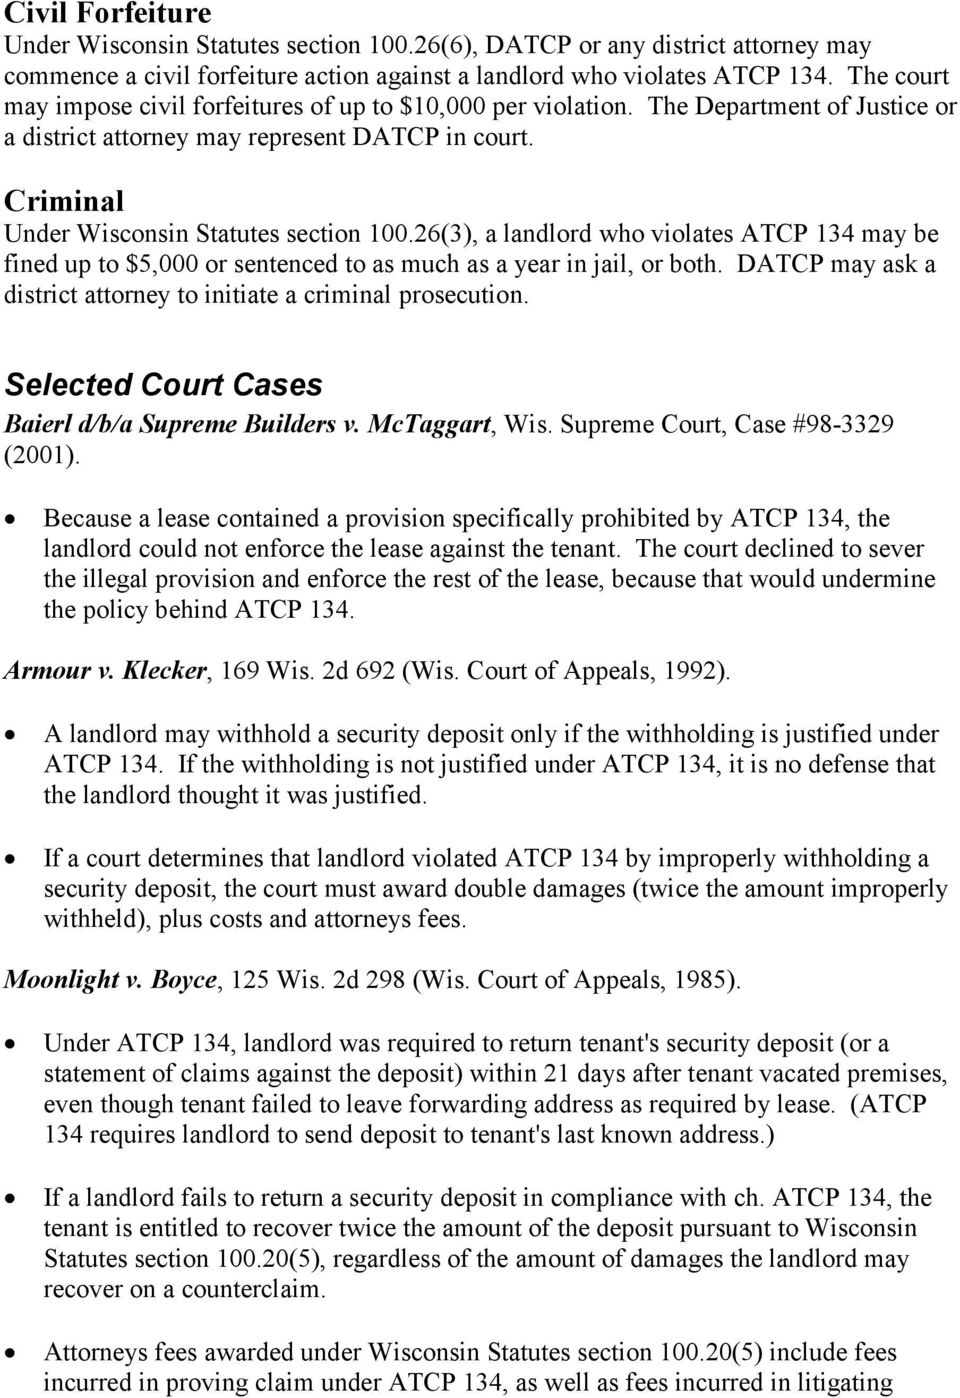 26(3), a landlord who violates ATCP 134 may be fined up to $5,000 or sentenced to as much as a year in jail, or both. DATCP may ask a district attorney to initiate a criminal prosecution.